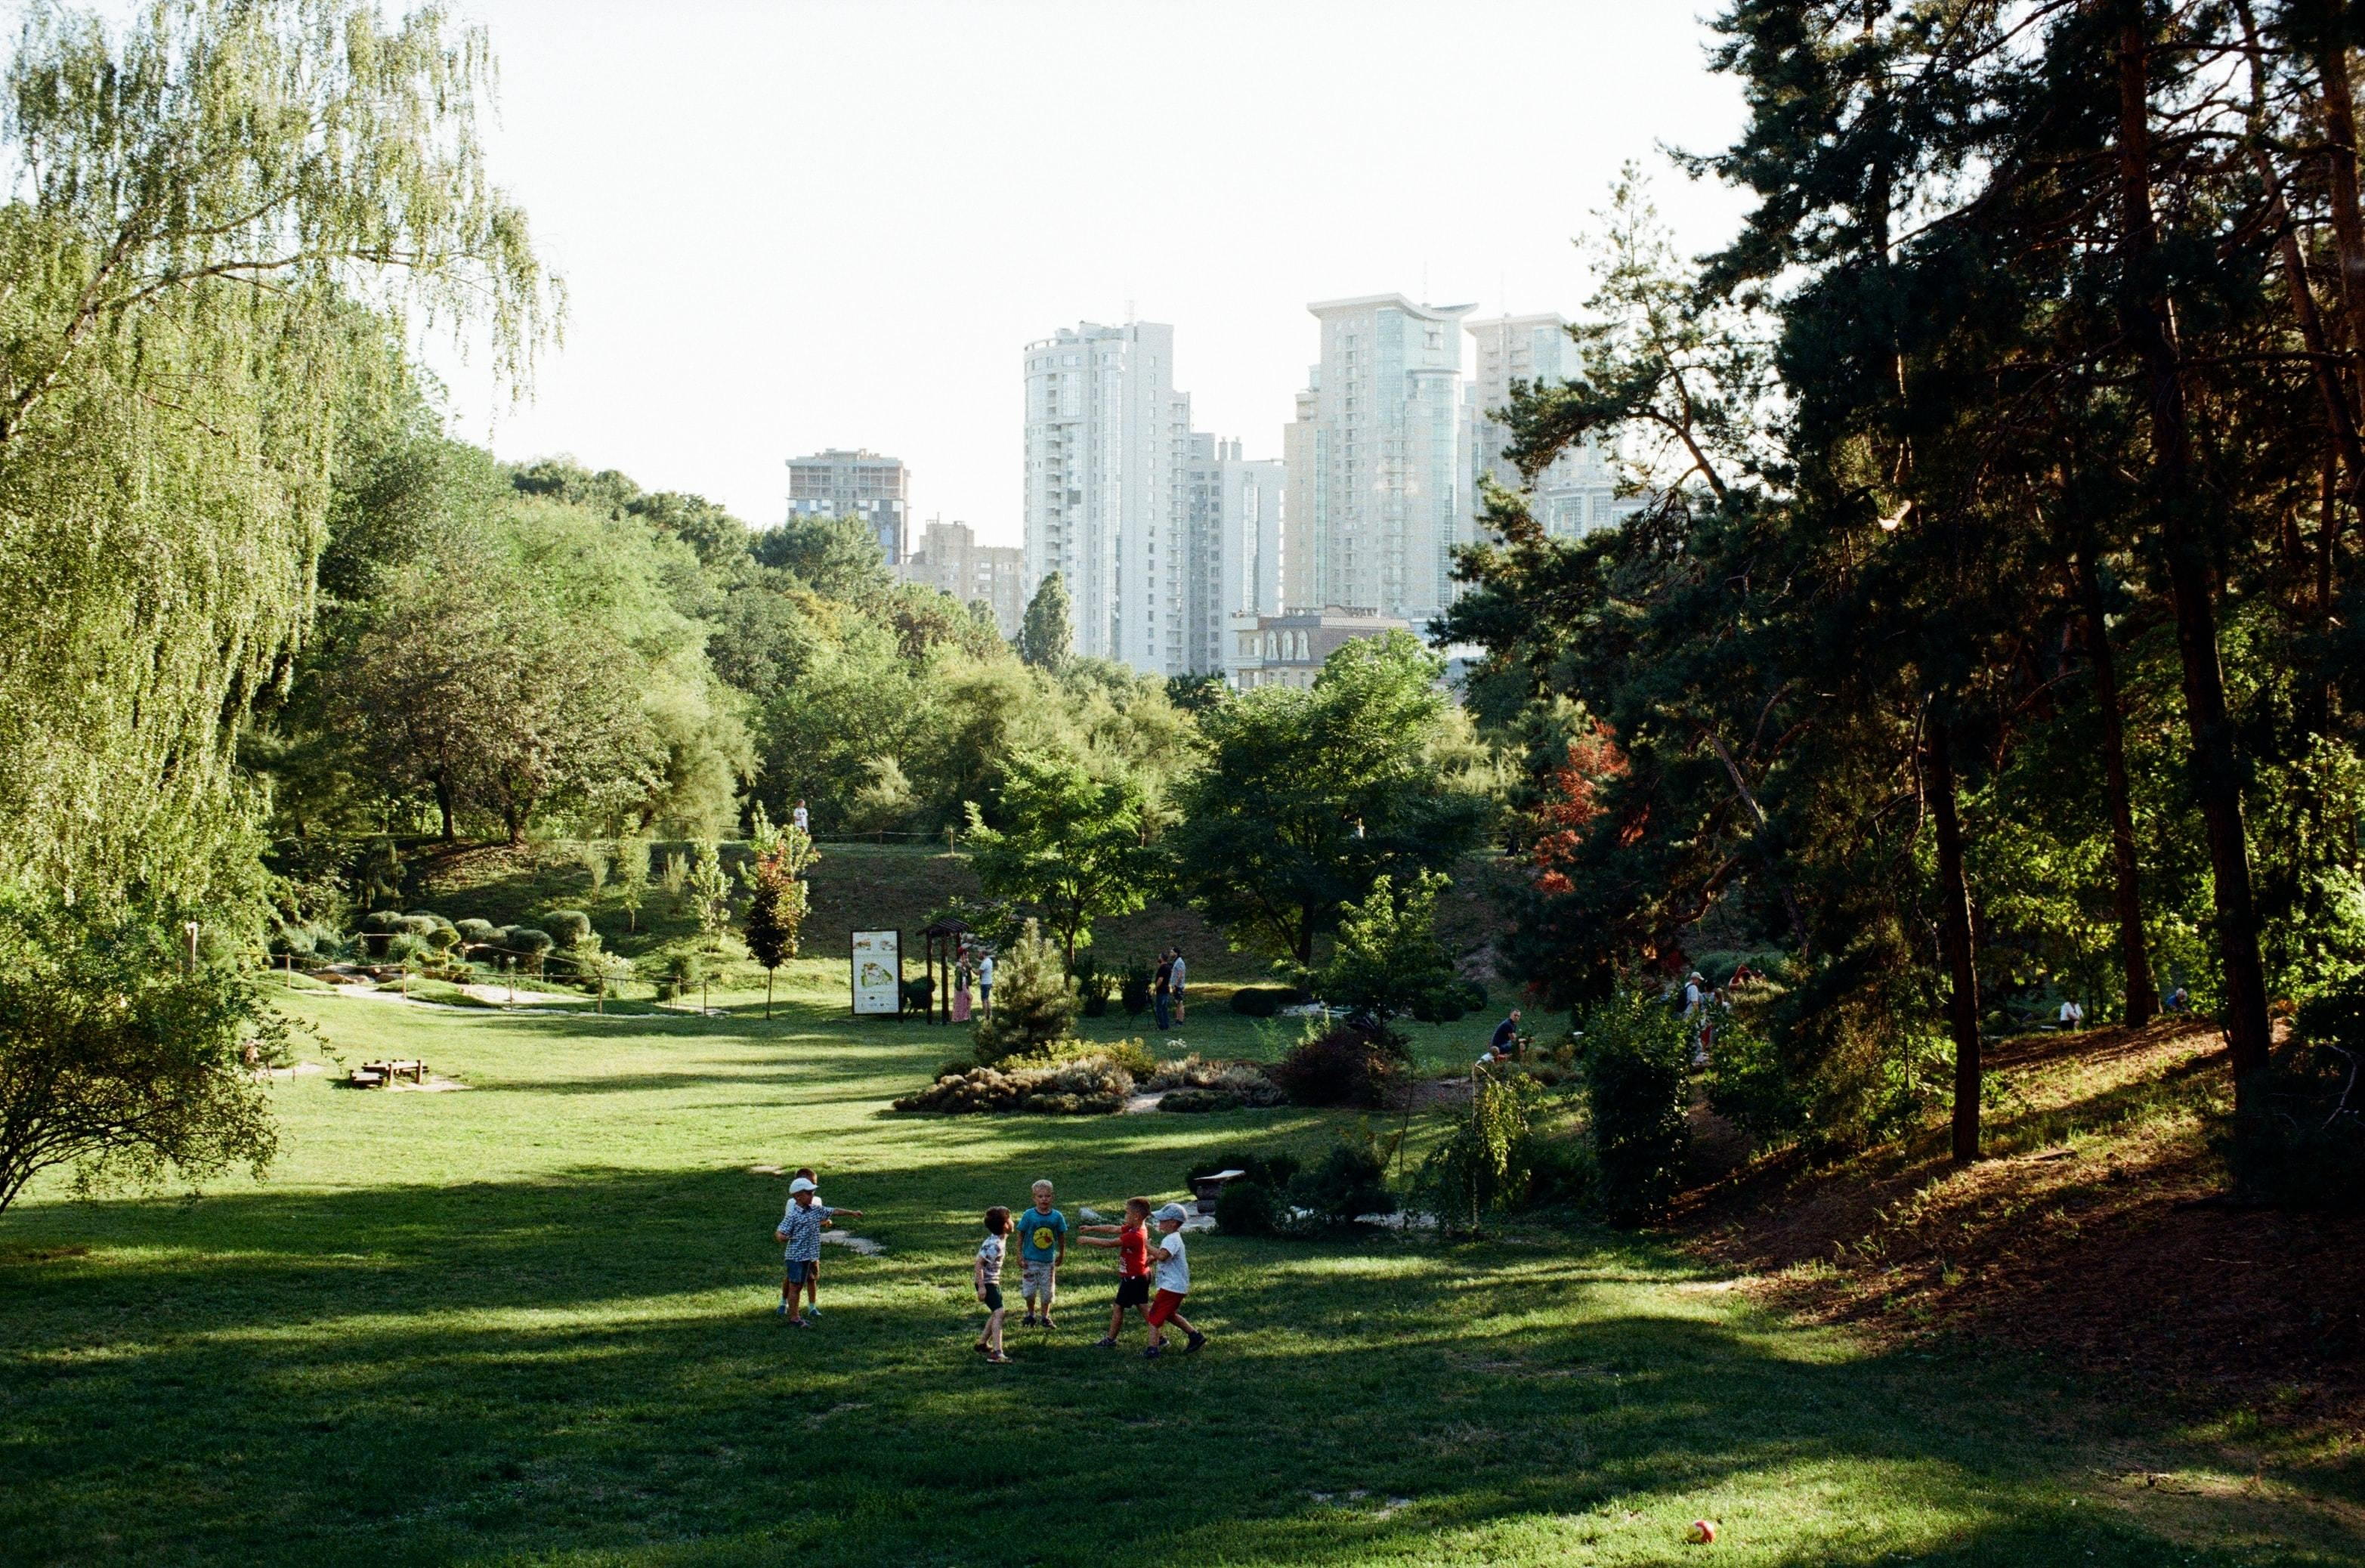 City park Urban forests cities environment air pollution mental health